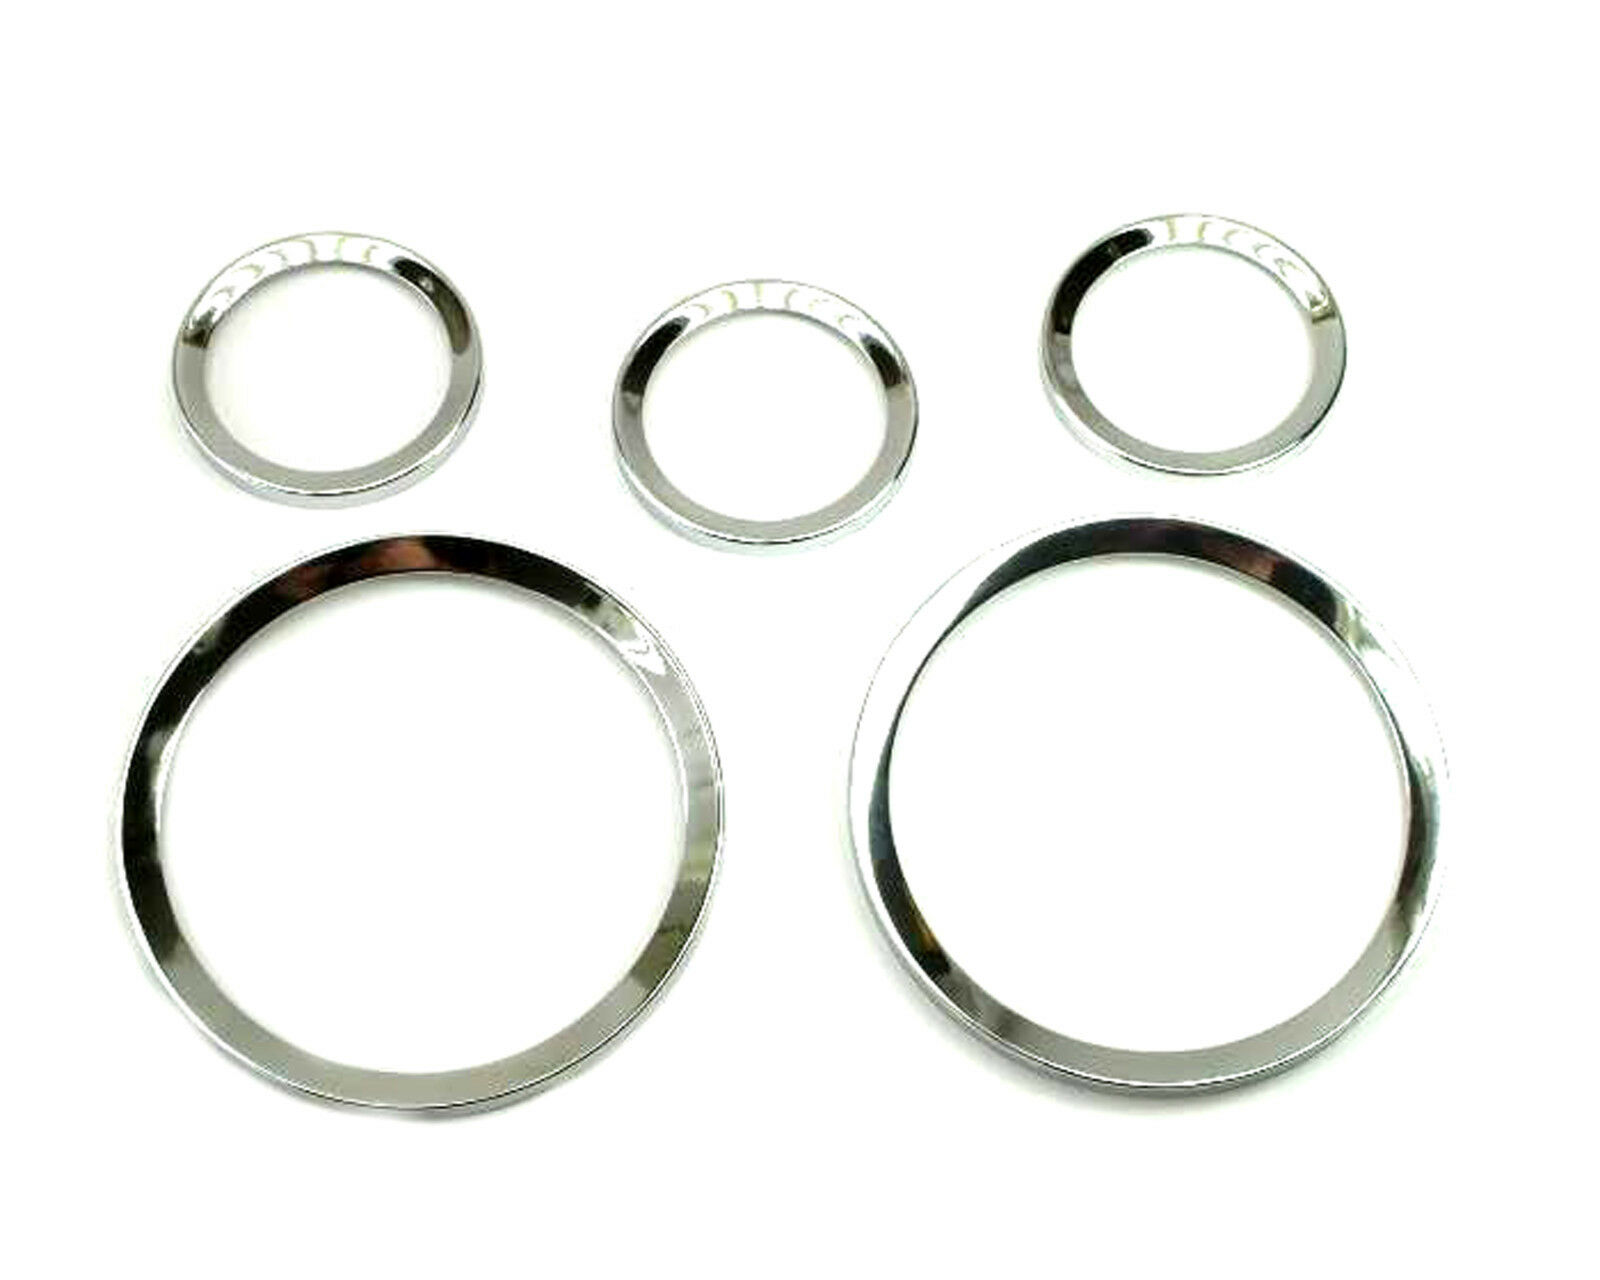 5X Chrome Ring Metal Fiat 124 850 Dino Veglia Borletti Chrome Instrument Bezels